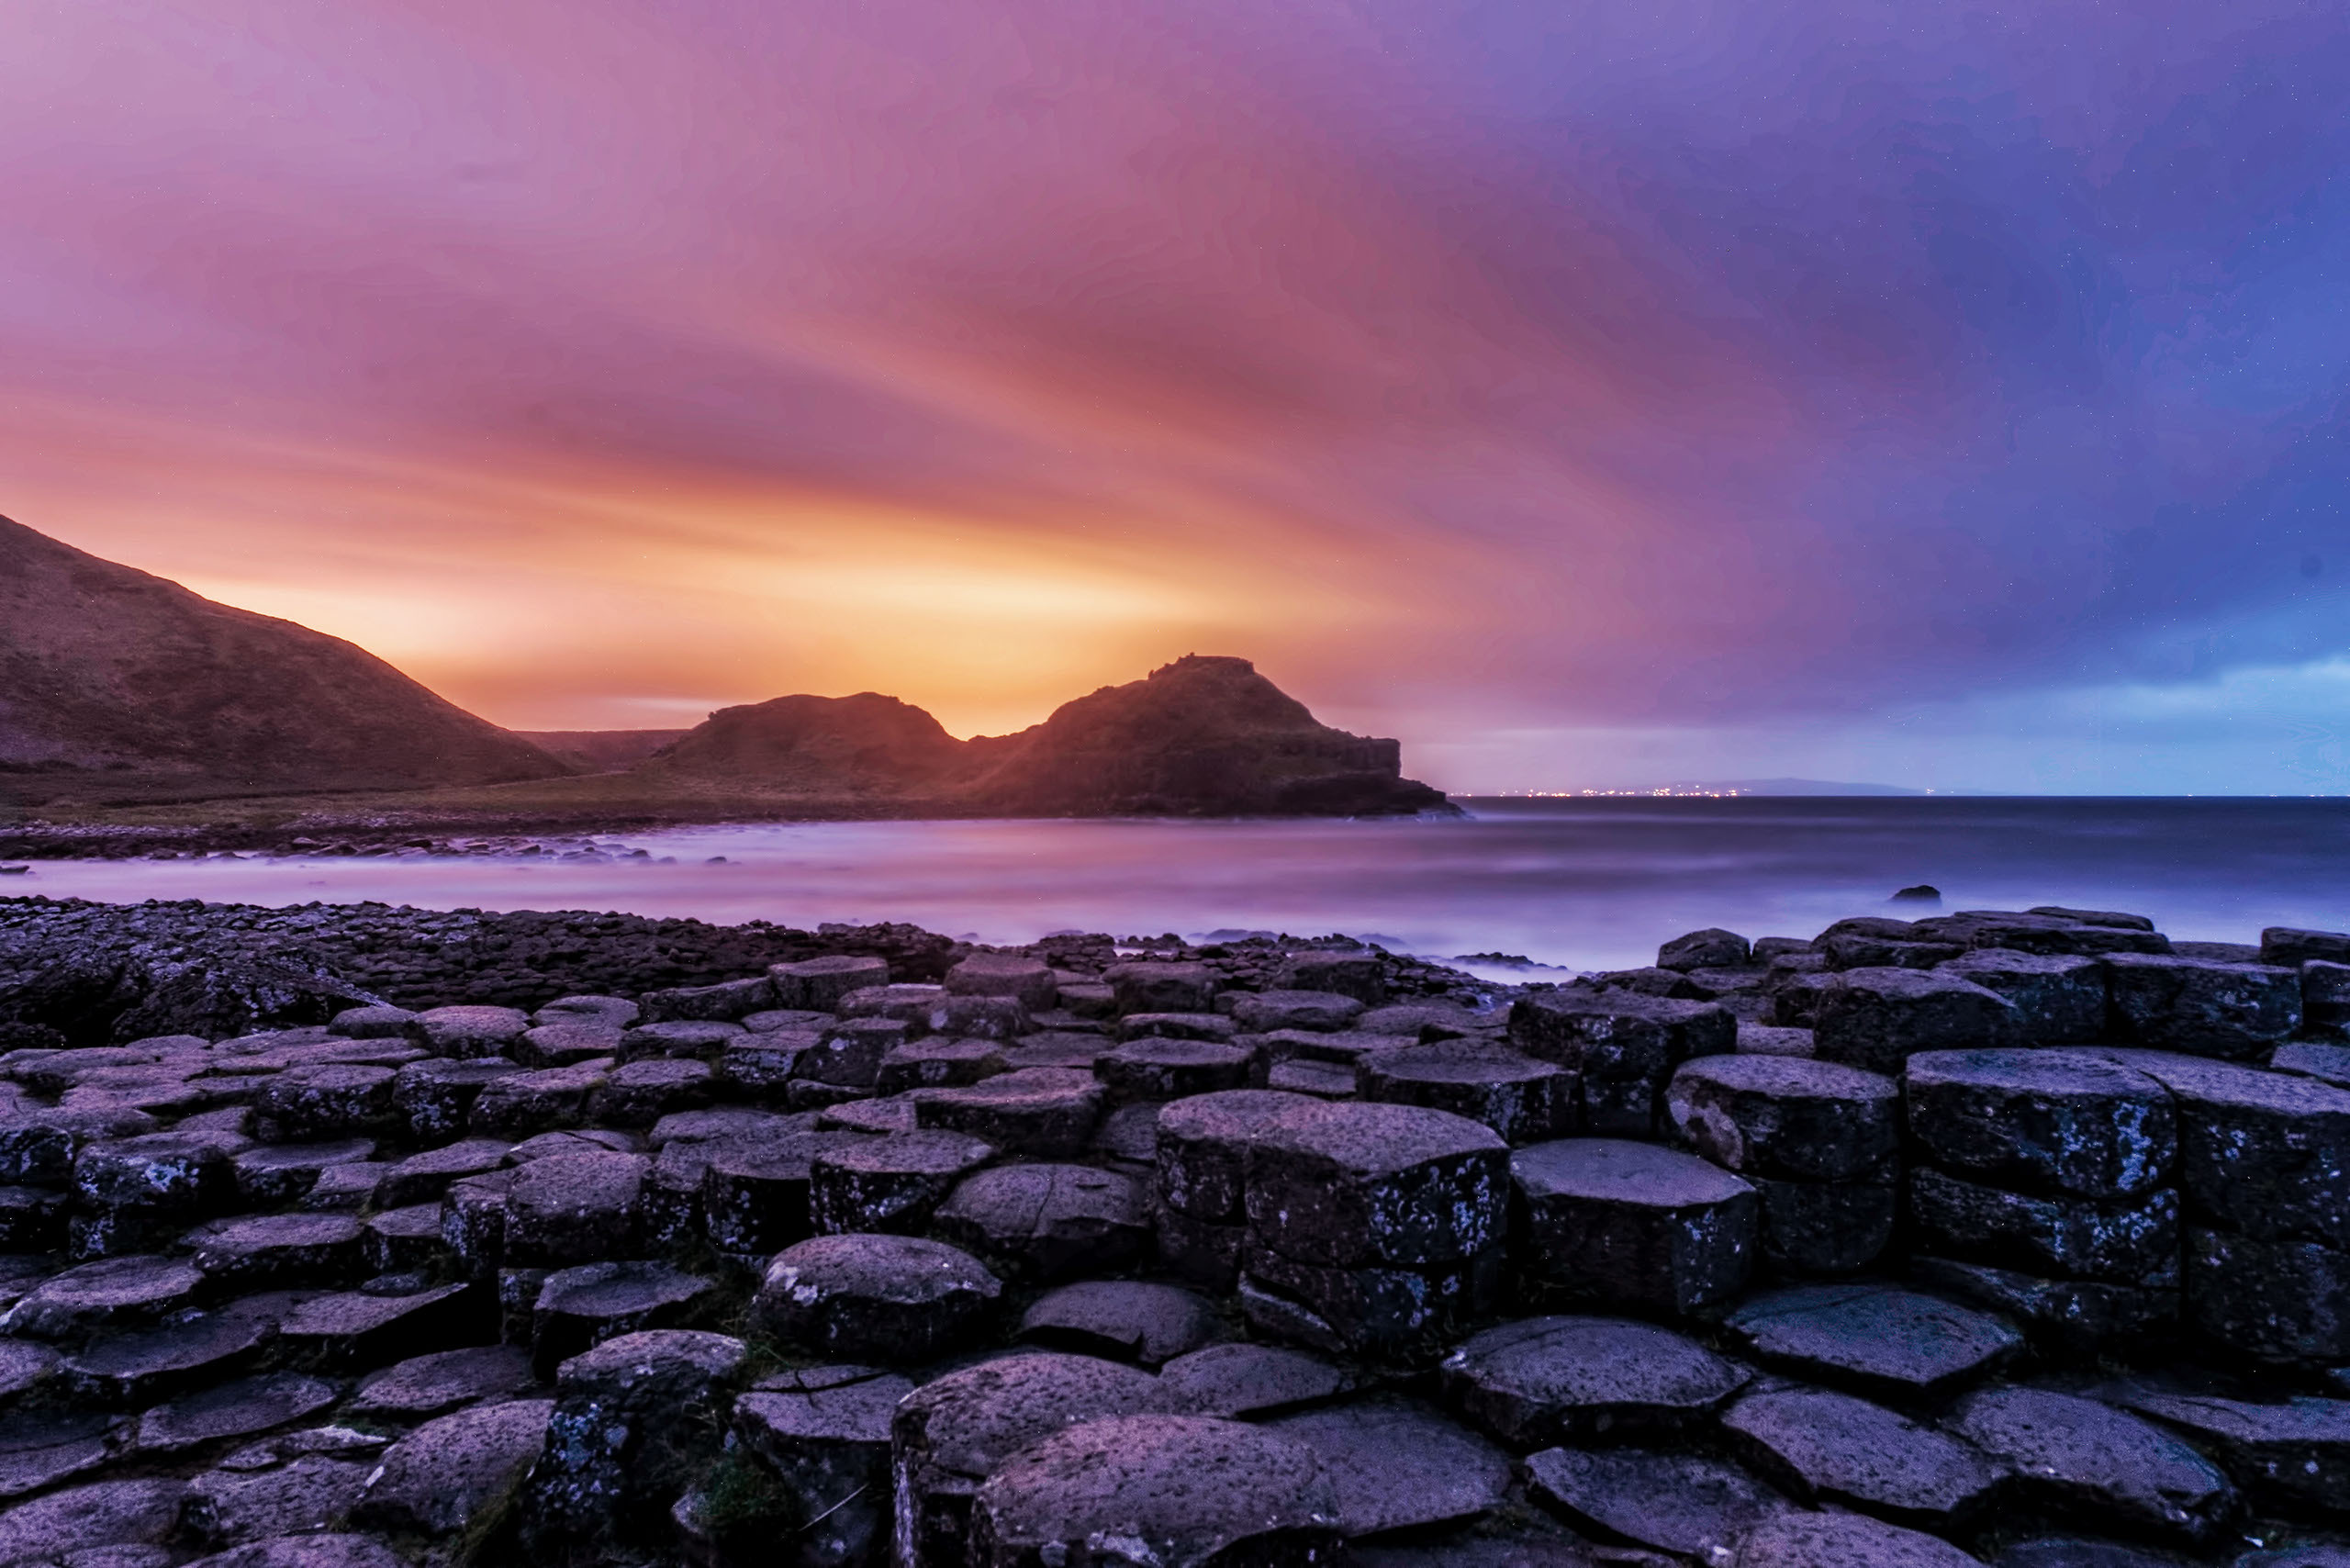 Giants Causeway Wallpapers Images Photos Pictures Backgrounds 2560x1708